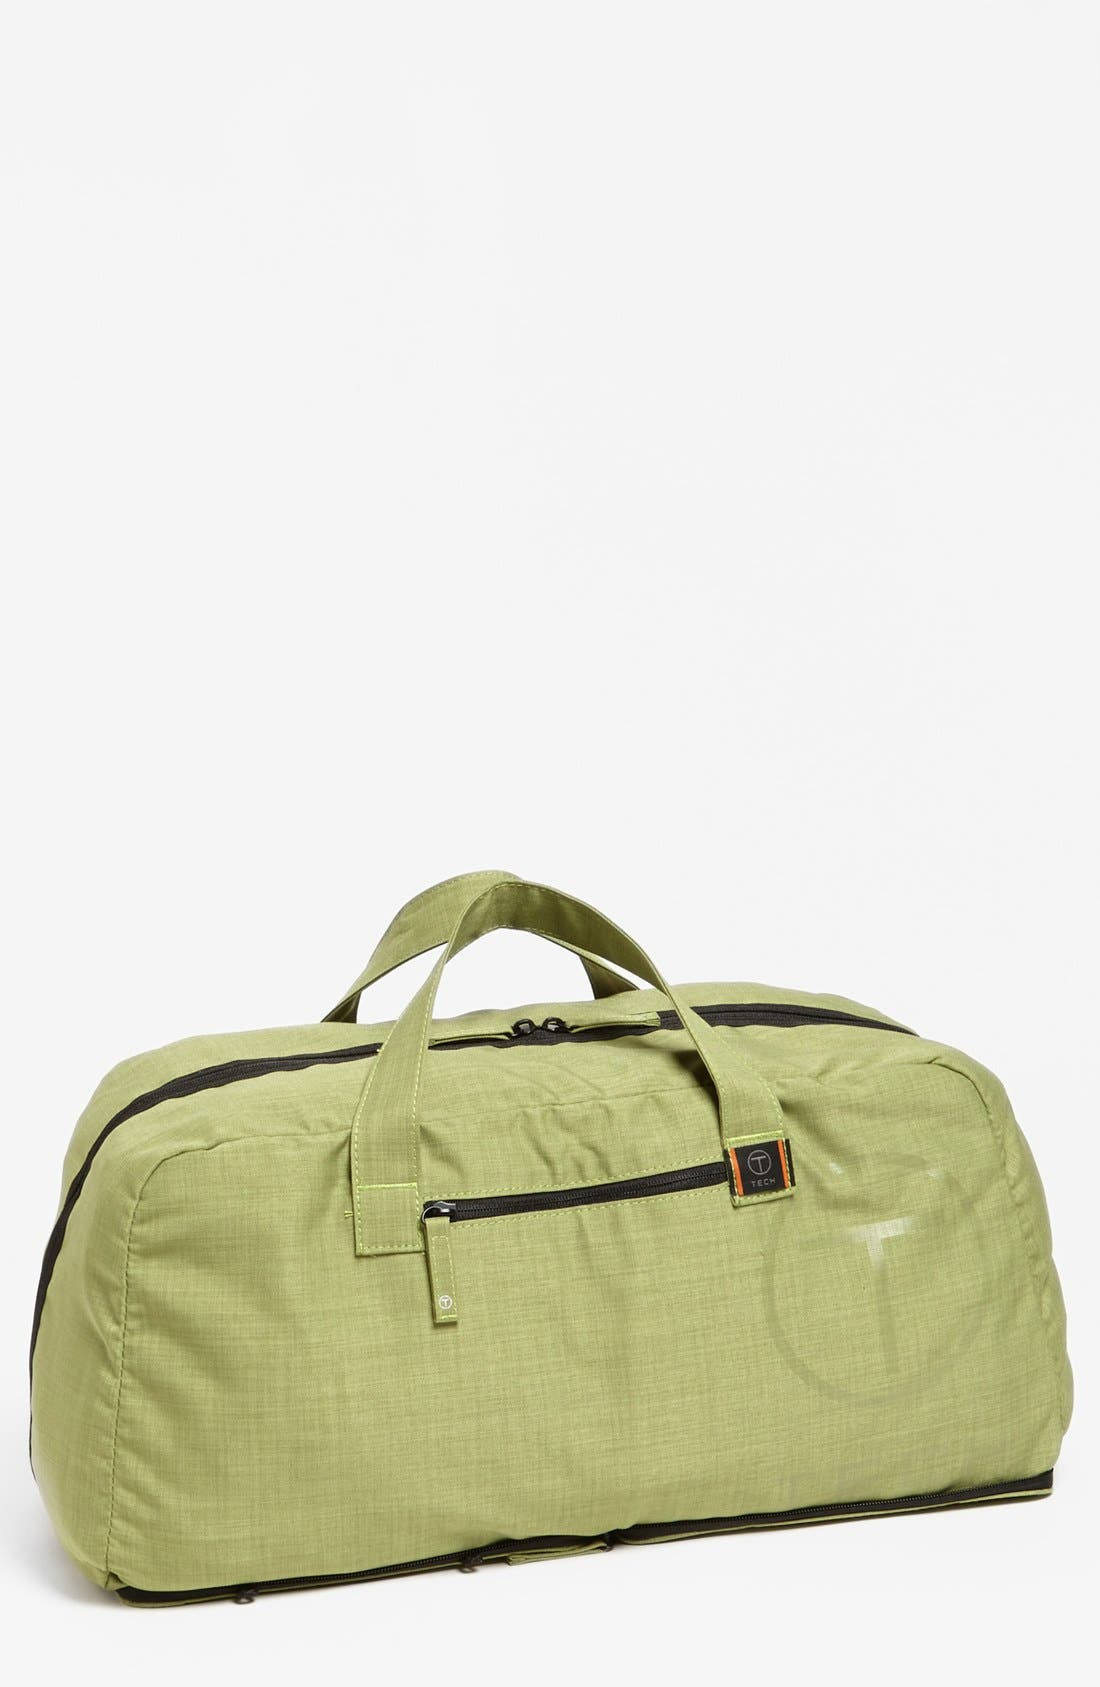 Alternate Image 1 Selected - T-Tech by TUMI Packable Duffel Bag